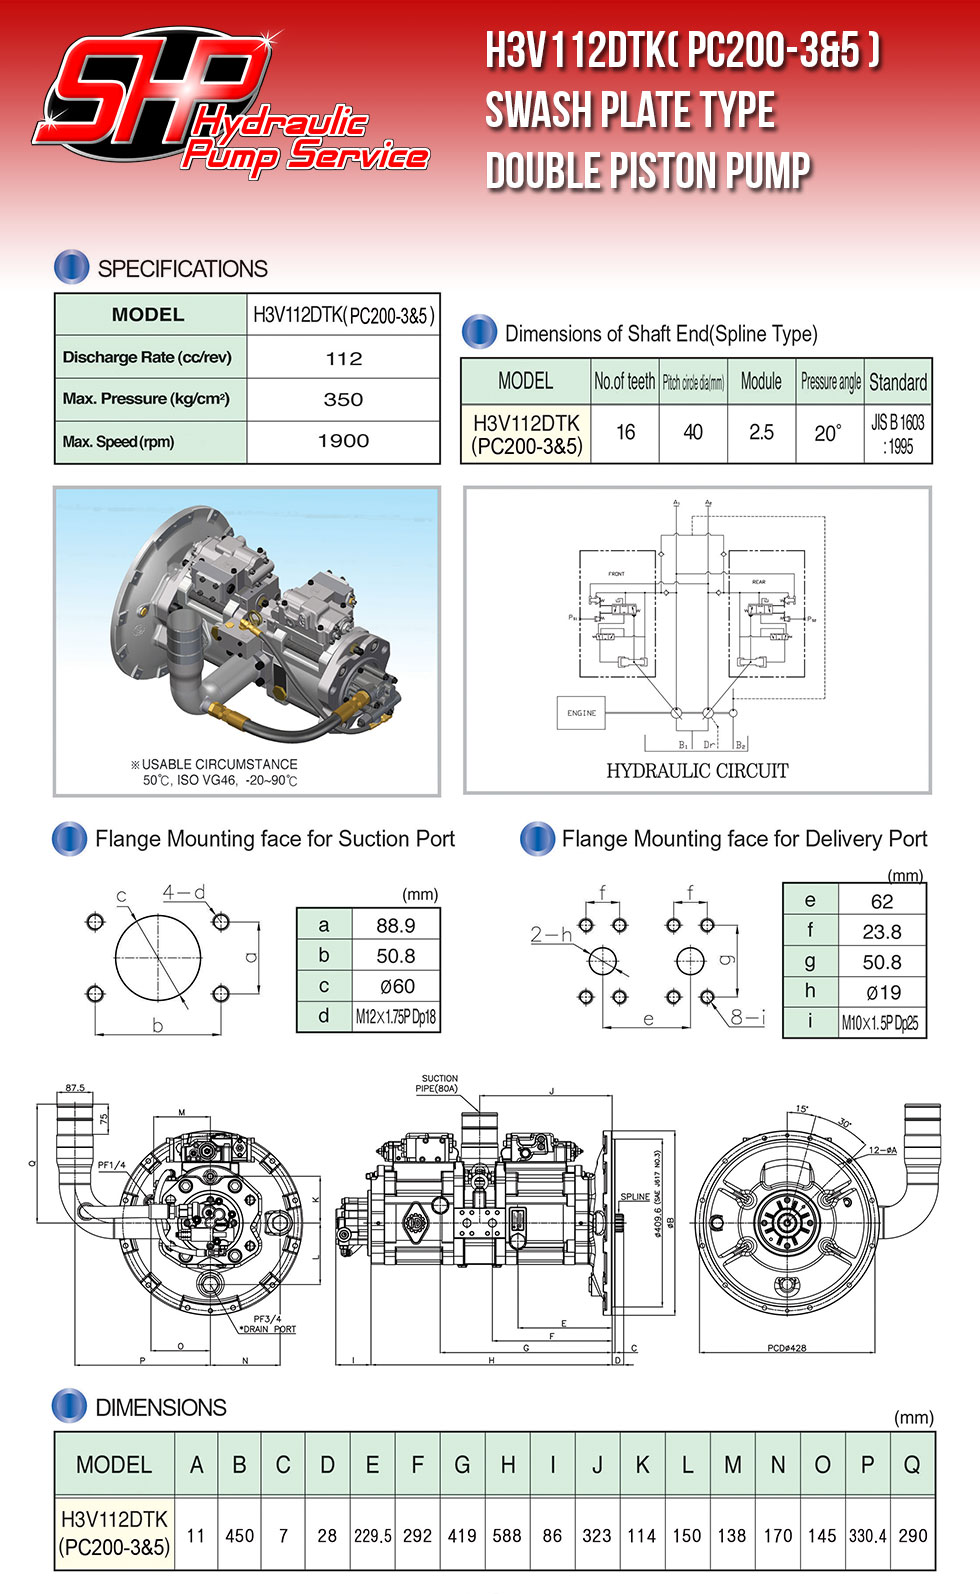 H3V112DTK( PC200-3&5 ) SWASH PLATE TYPE DOUBLE PISTON PUMP